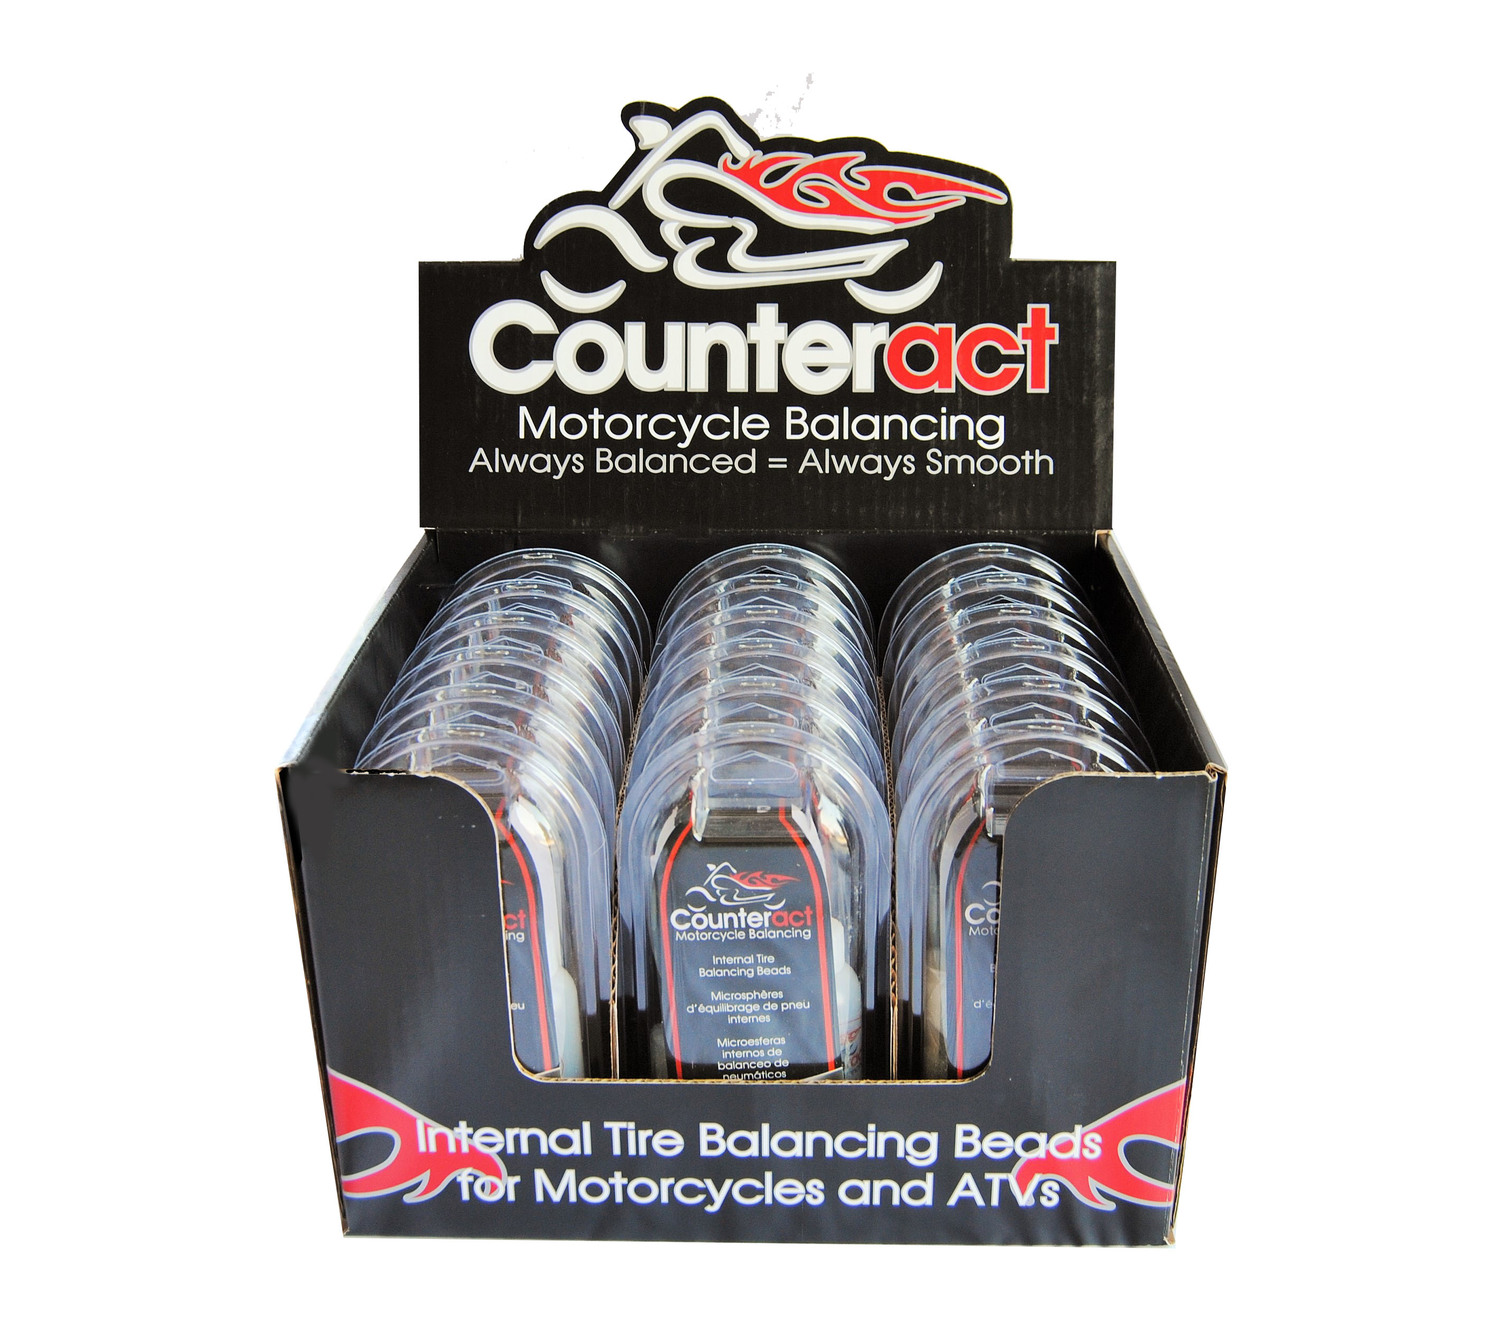 Counteract For Motorcycles Counteract Balancing Beads